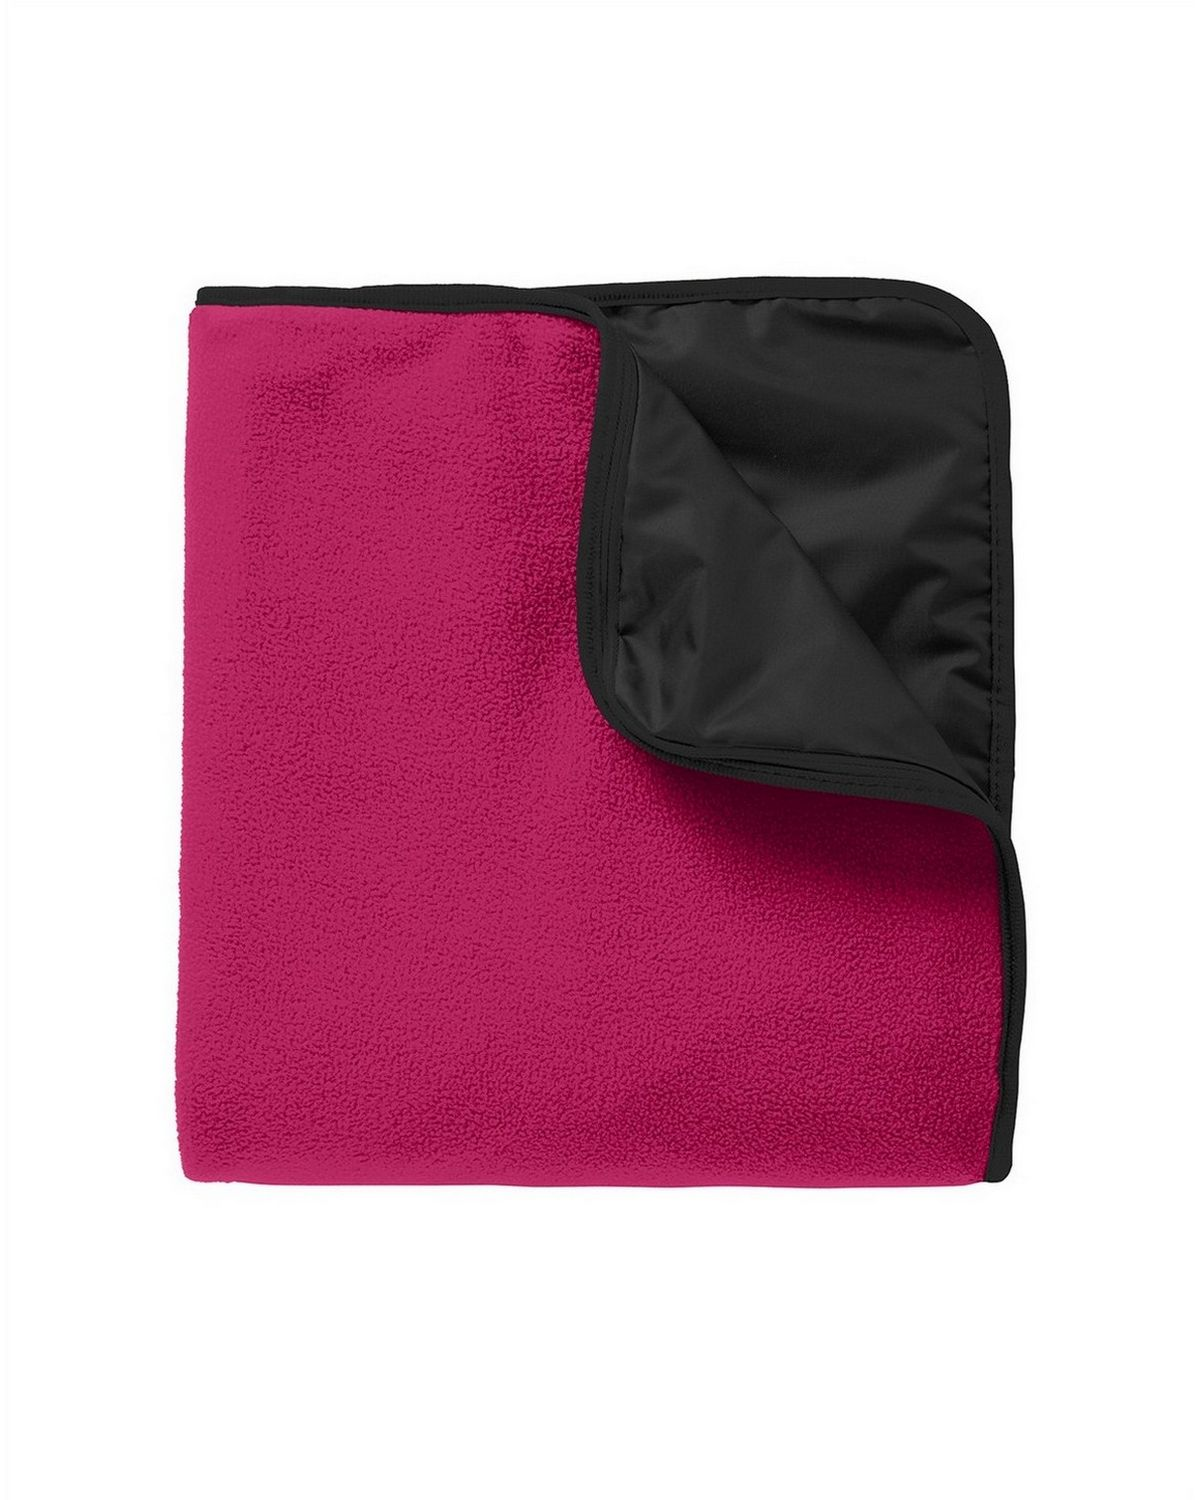 Port Authority TB850 Fleece & Poly Travel Blanket - Dark Fuchsia/Black - One Size from Port Authority